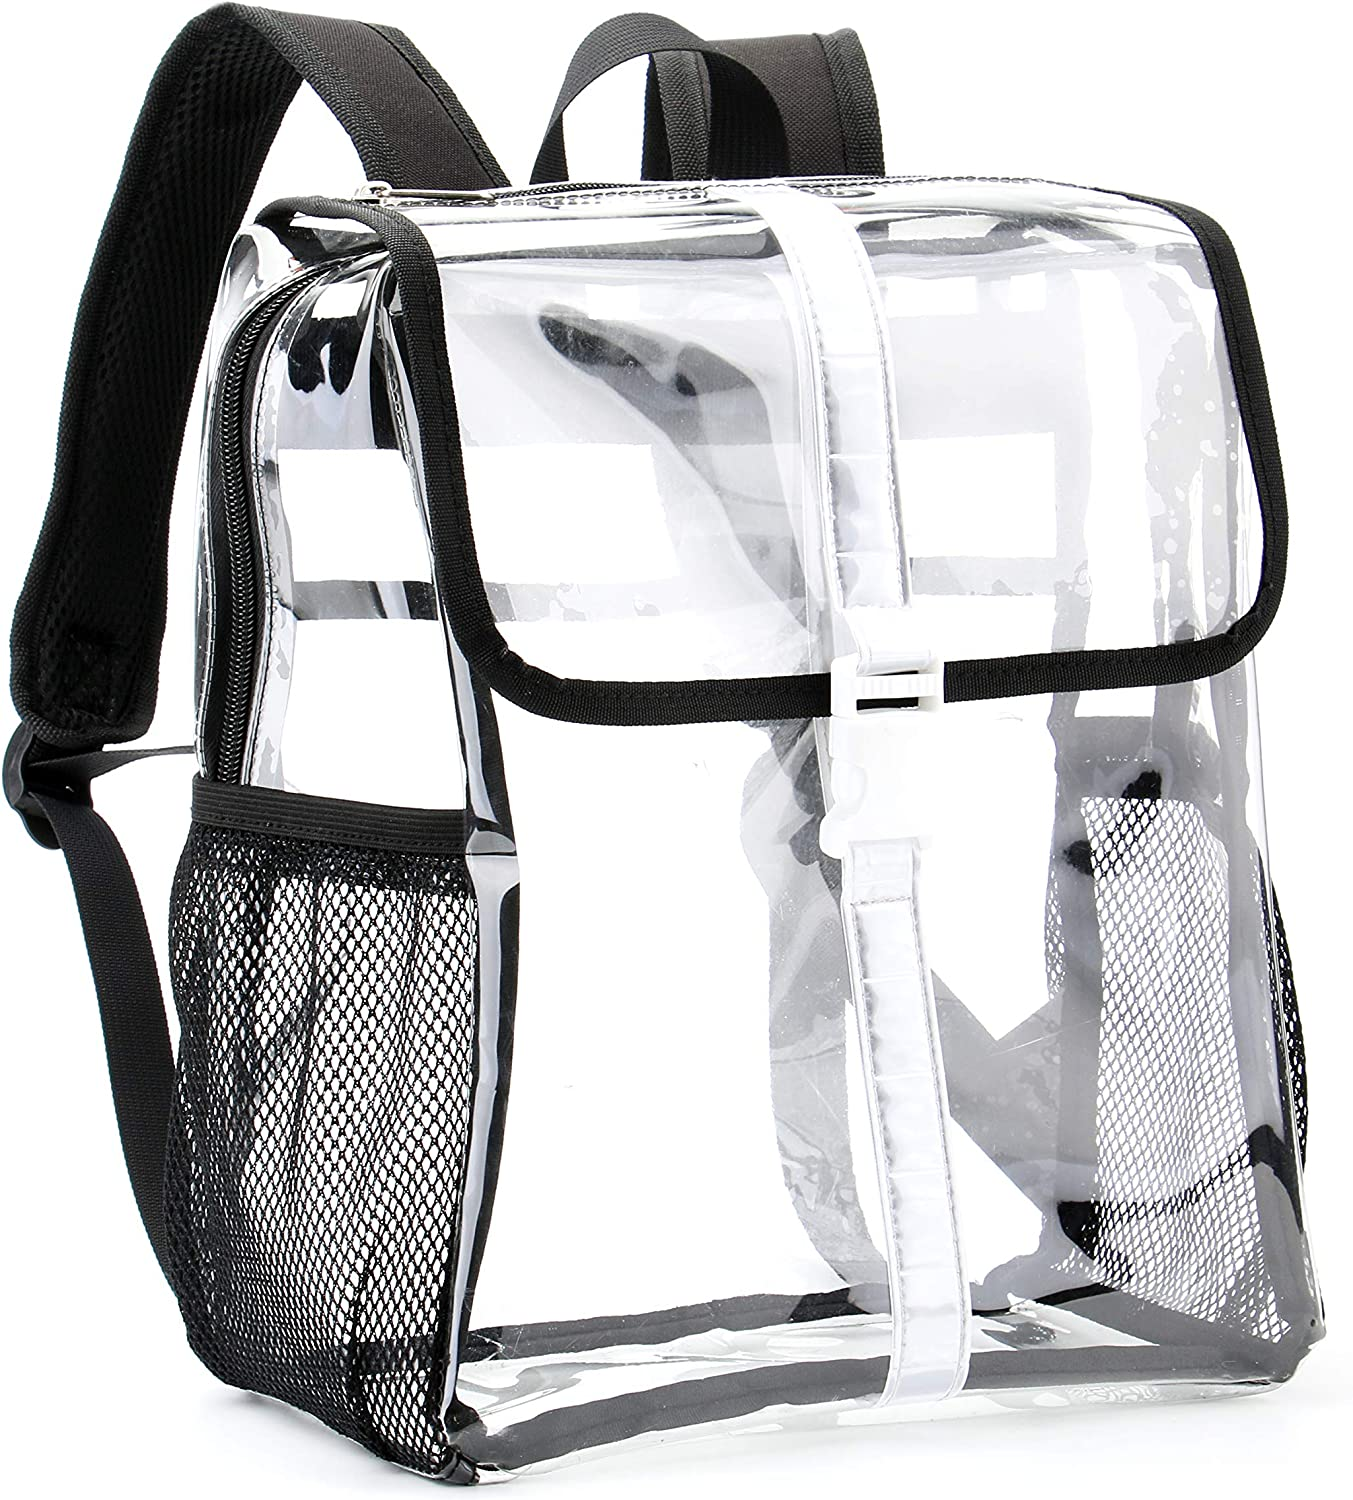 Heavy Duty Clear Backpack Durable PVC Backpacks Reflective Stripes Design for School Concert Work Security Travel Sports